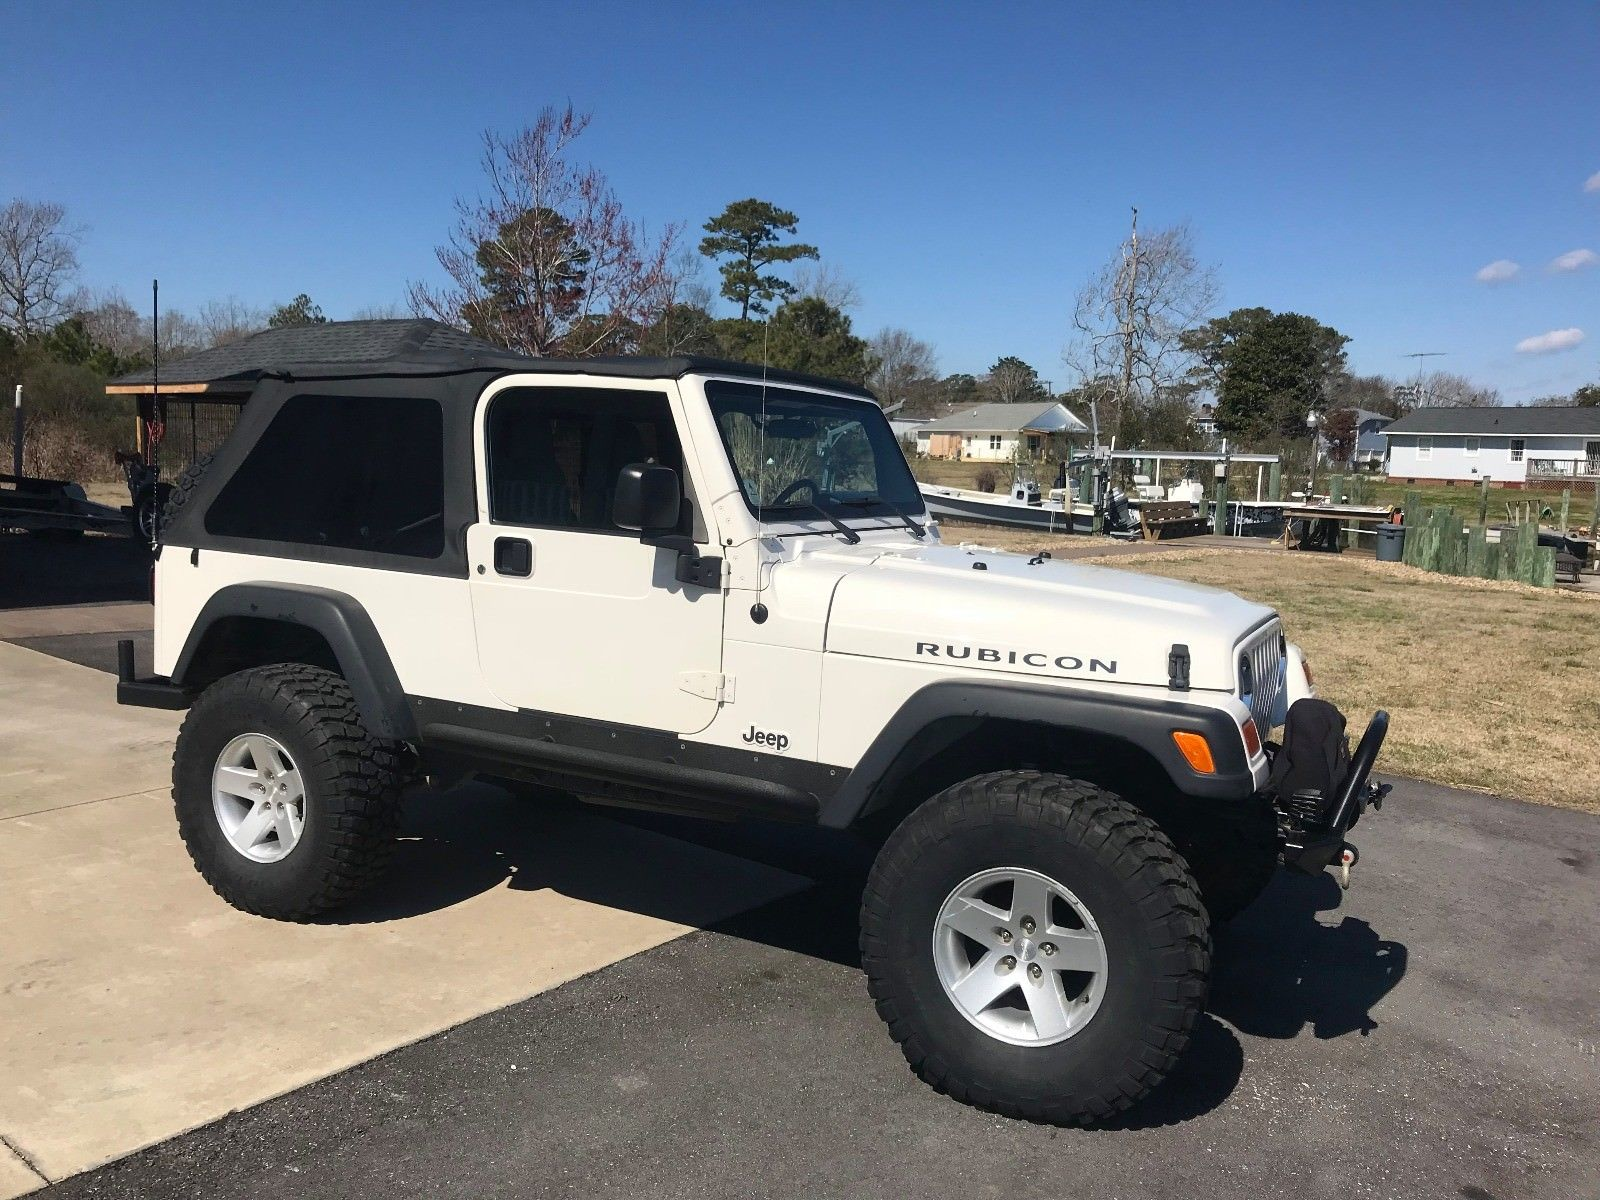 Used 2005 Jeep Wrangler Rubicon 2005 Jeep Wrangler Lj Unlimited Rubicon Only 27 400 Miles  2018